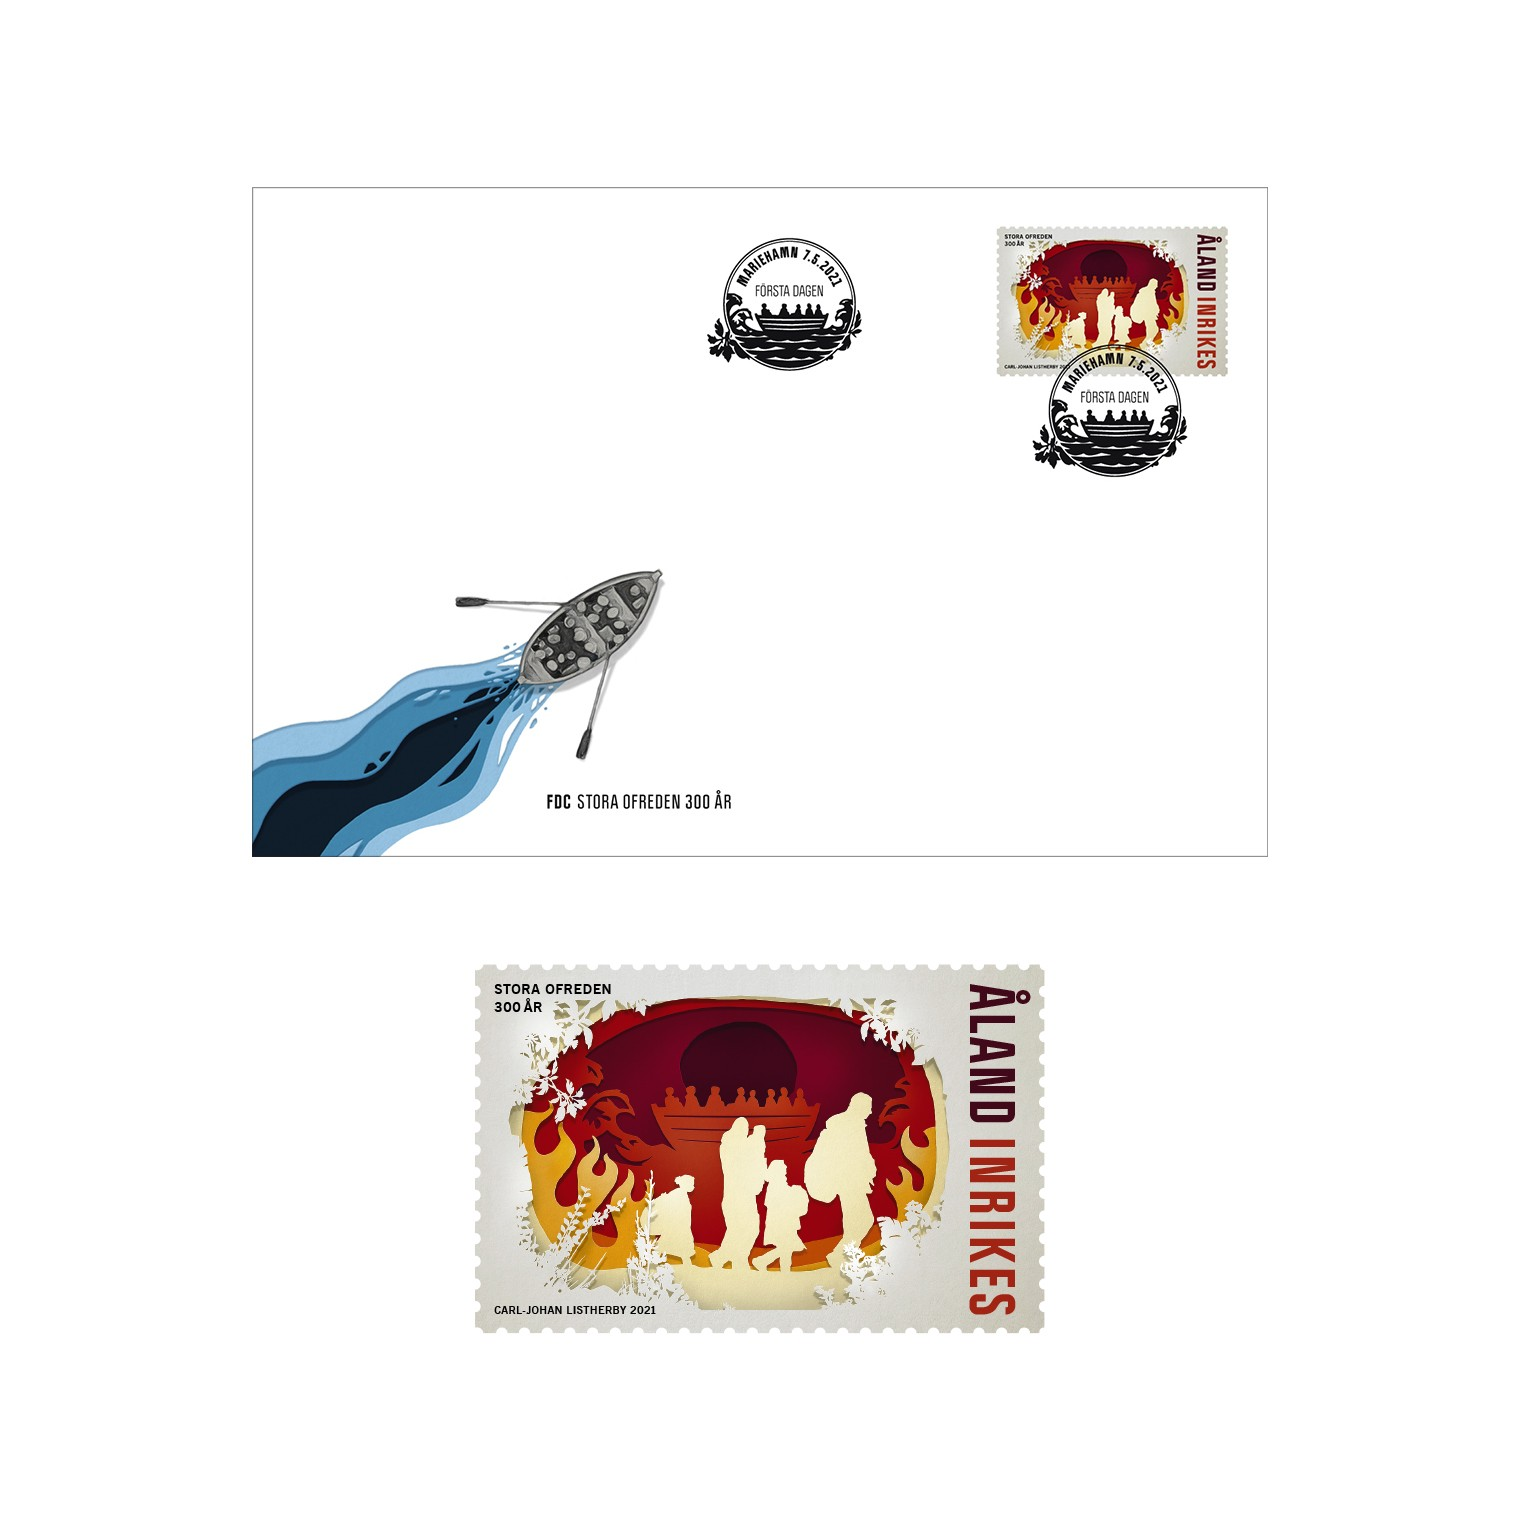 Åland stamp Great Northern War and first day cover